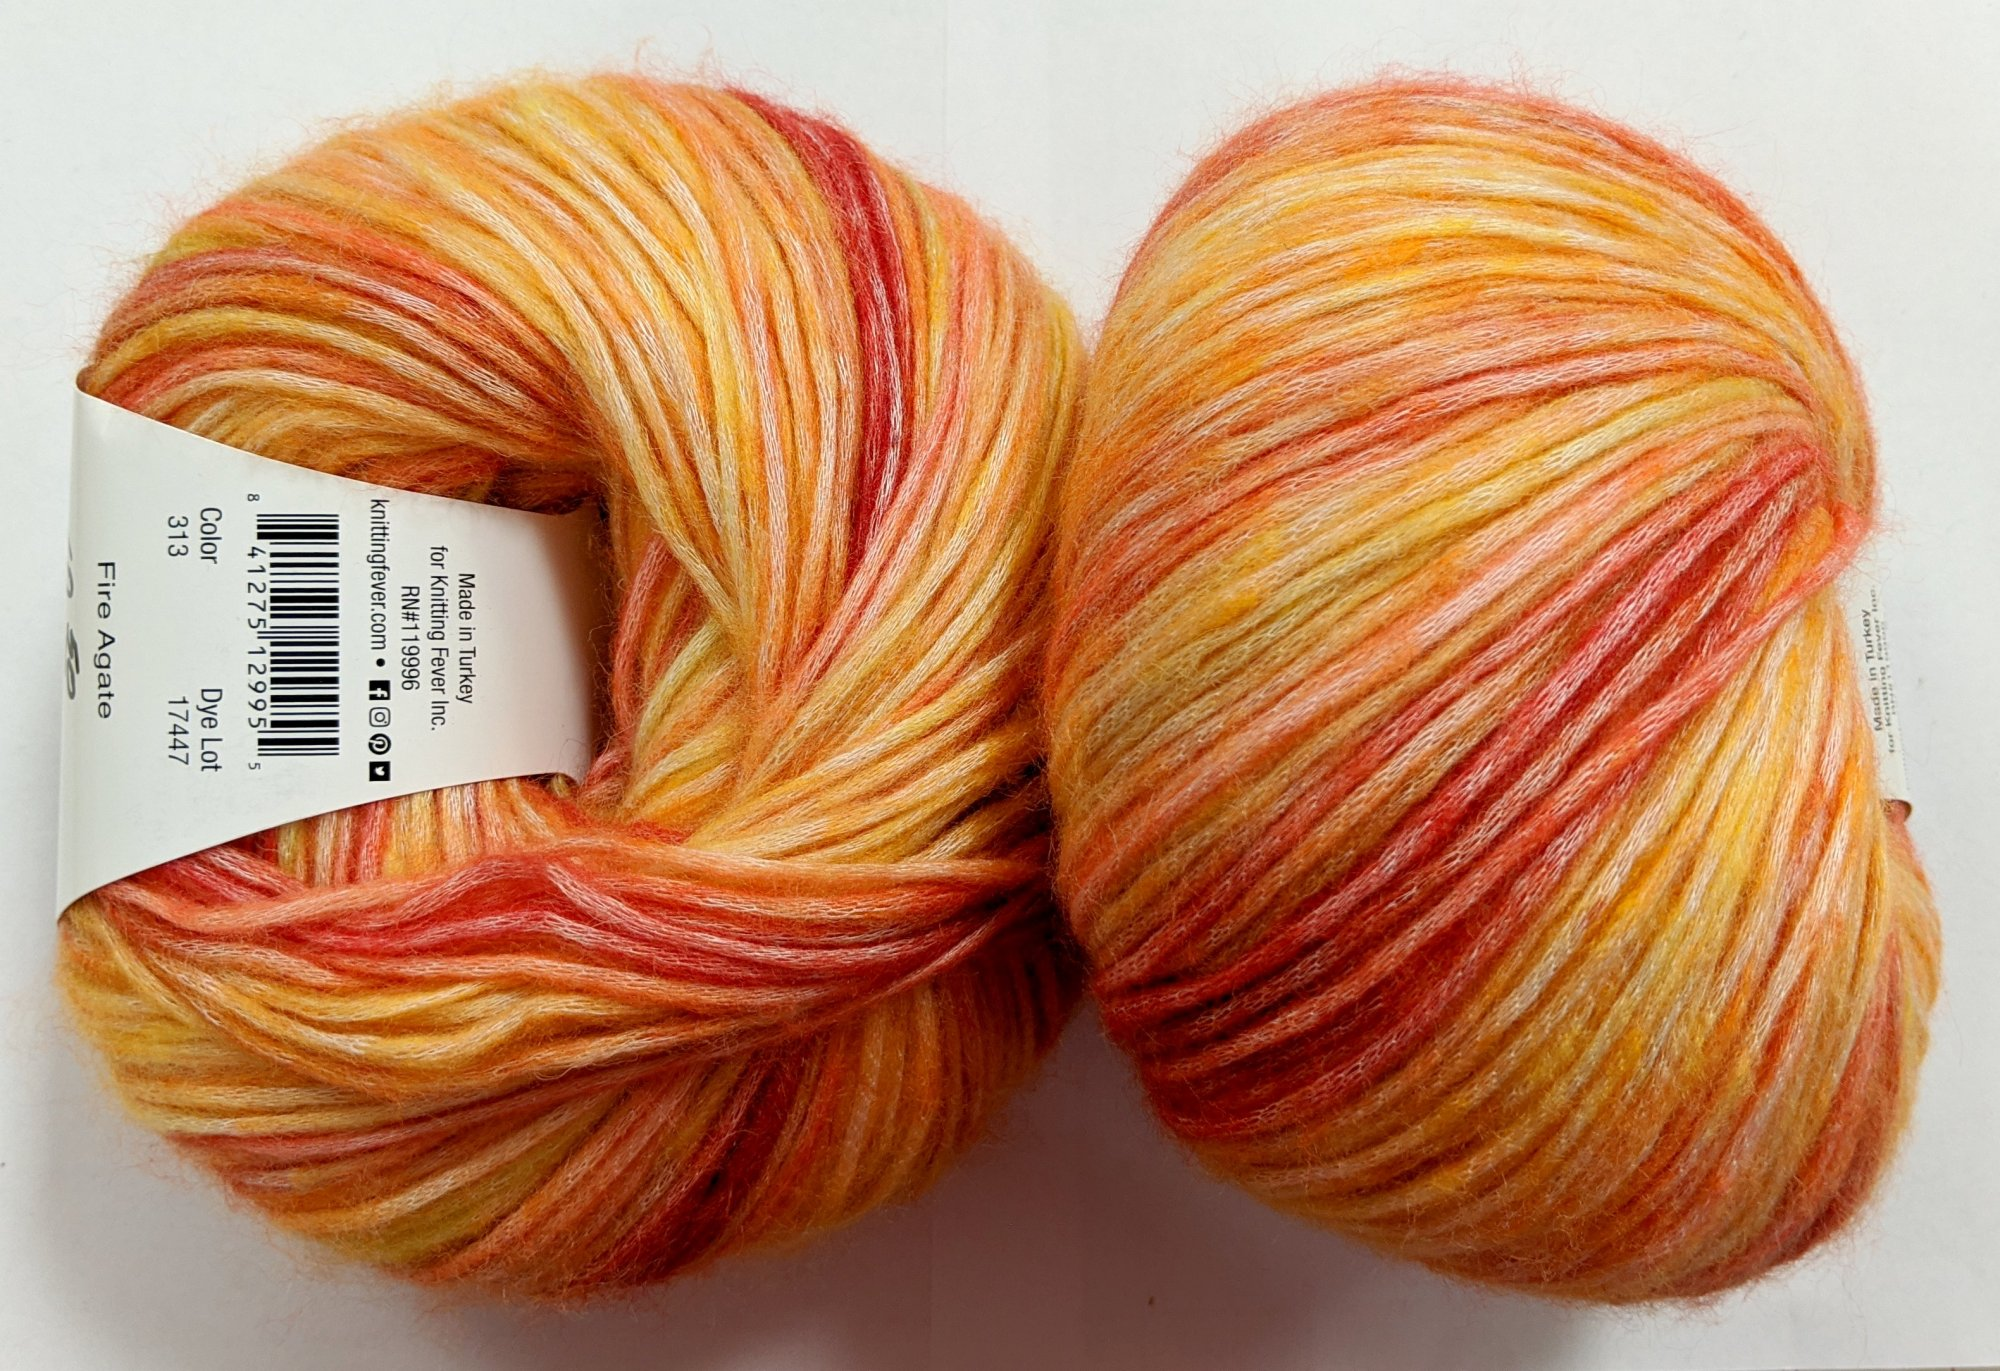 Knitting Fever Painted Mist Yarn - Fire Agate #313